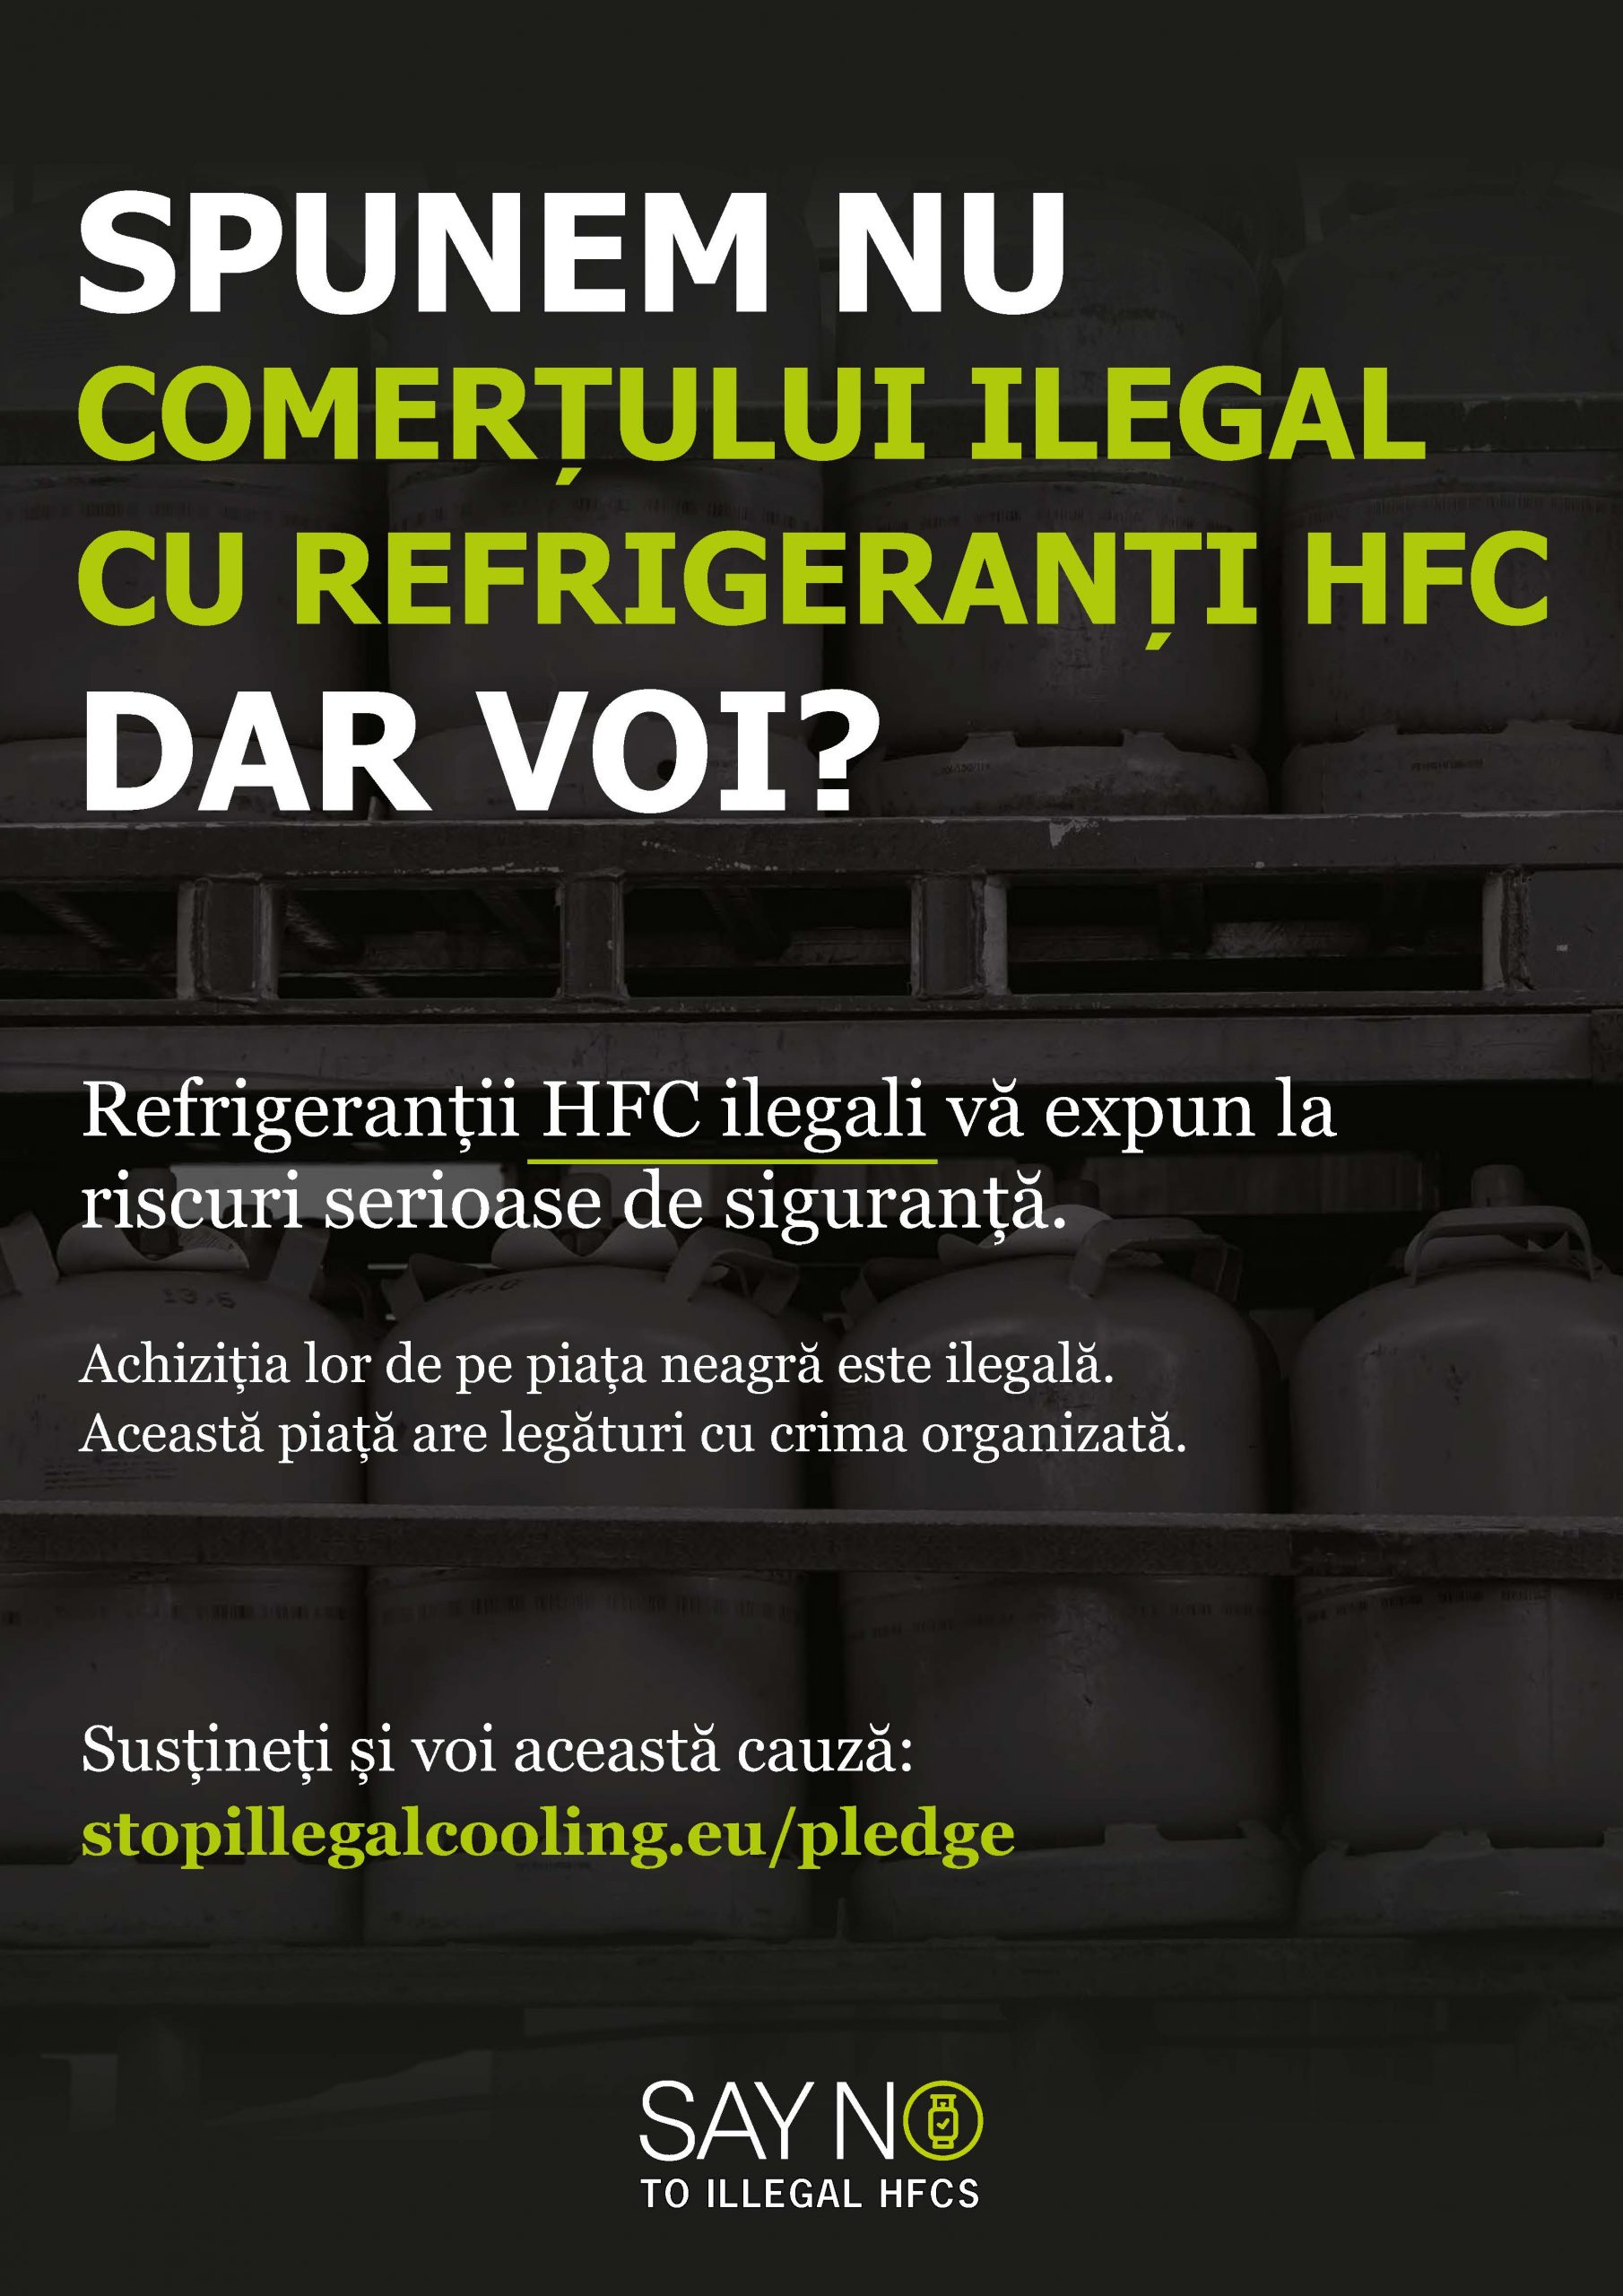 Say NO to illegal HFCs